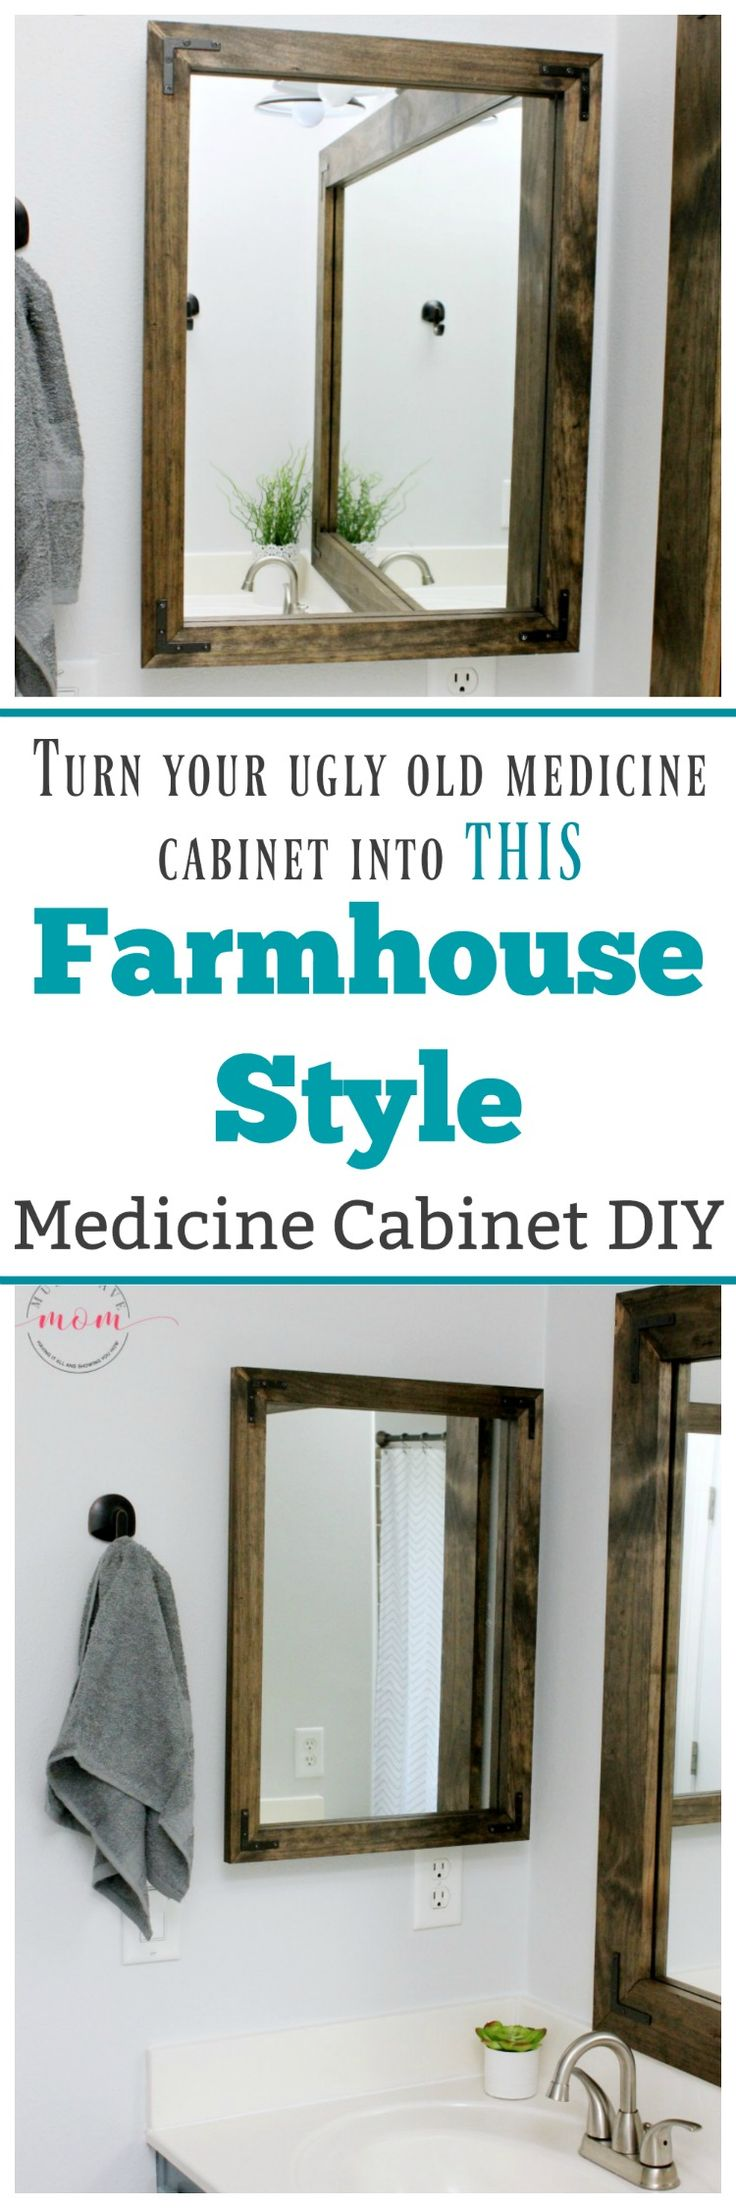 Turn your ugly medicine cabinet into this Farmhouse Style beautiful framed medicine cabinet for CHEAP!